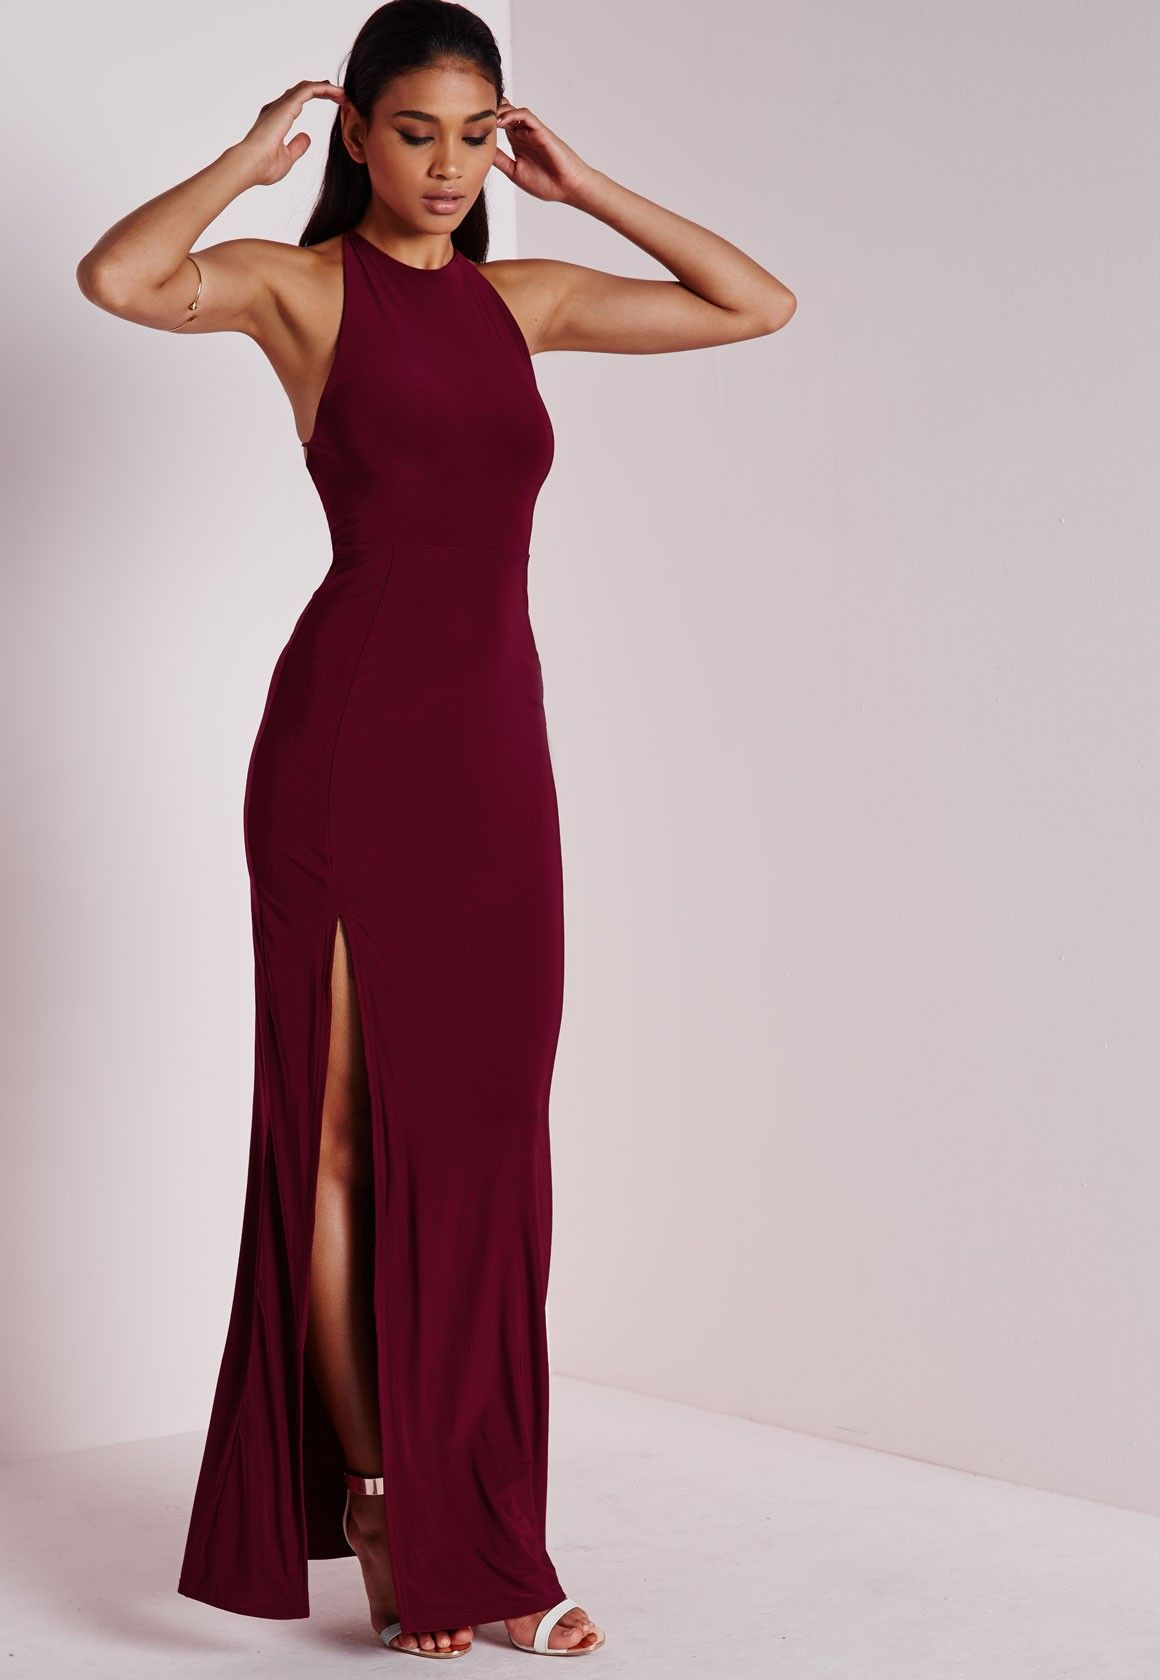 ff7483dc60f6 Slinky Side Split Maxi Dress Burgundy - Dresses - Maxi Dresses - Missguided